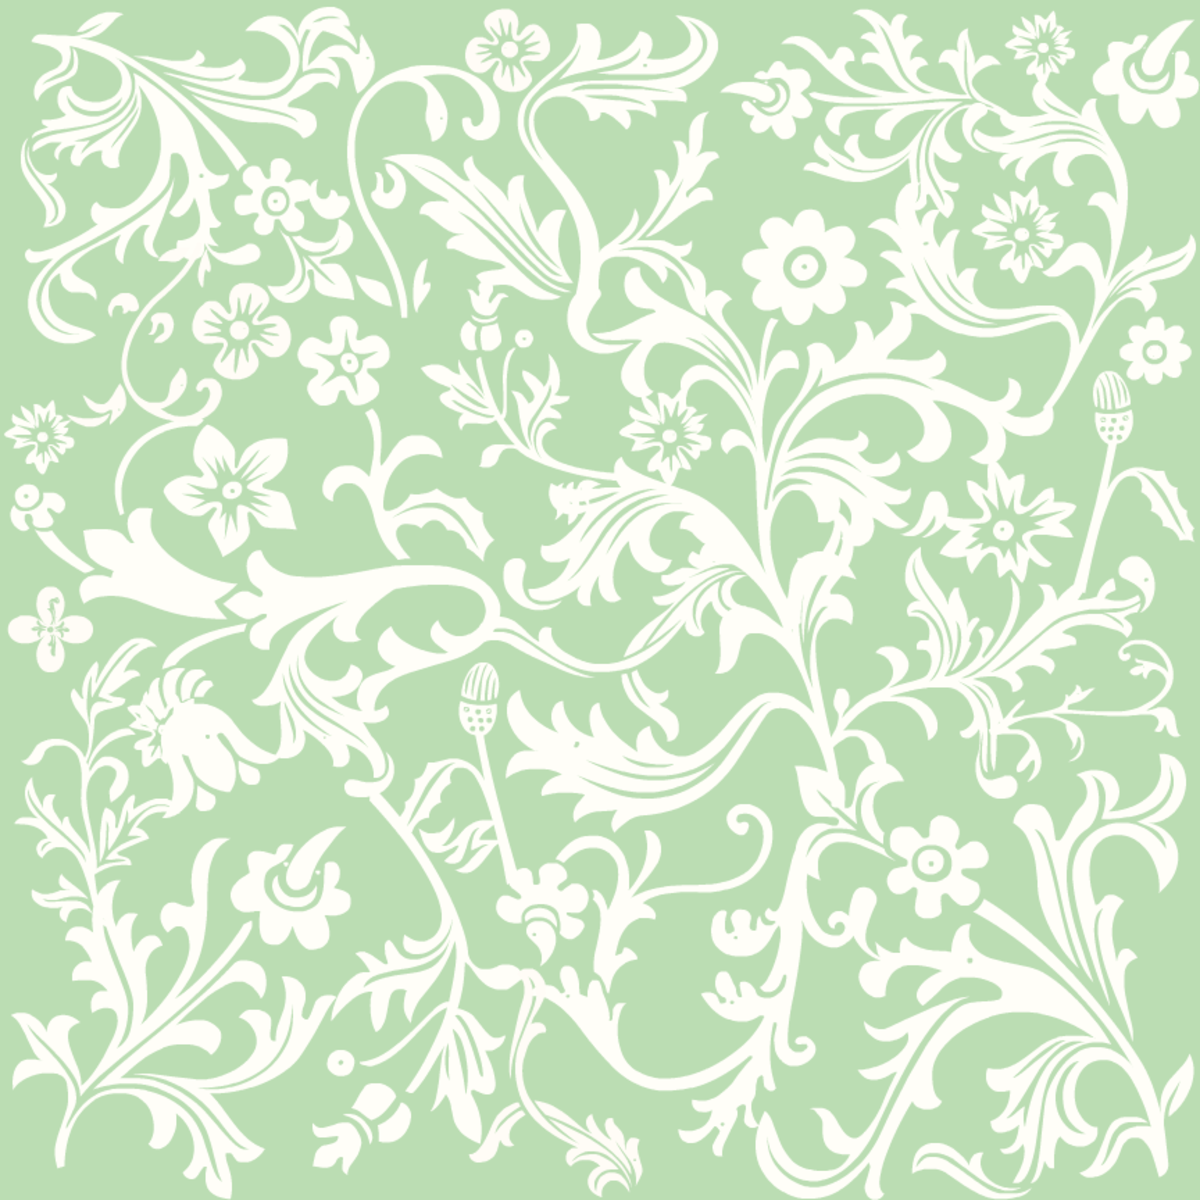 St. Patrick's Day green Victorian flowers scrapbook papers